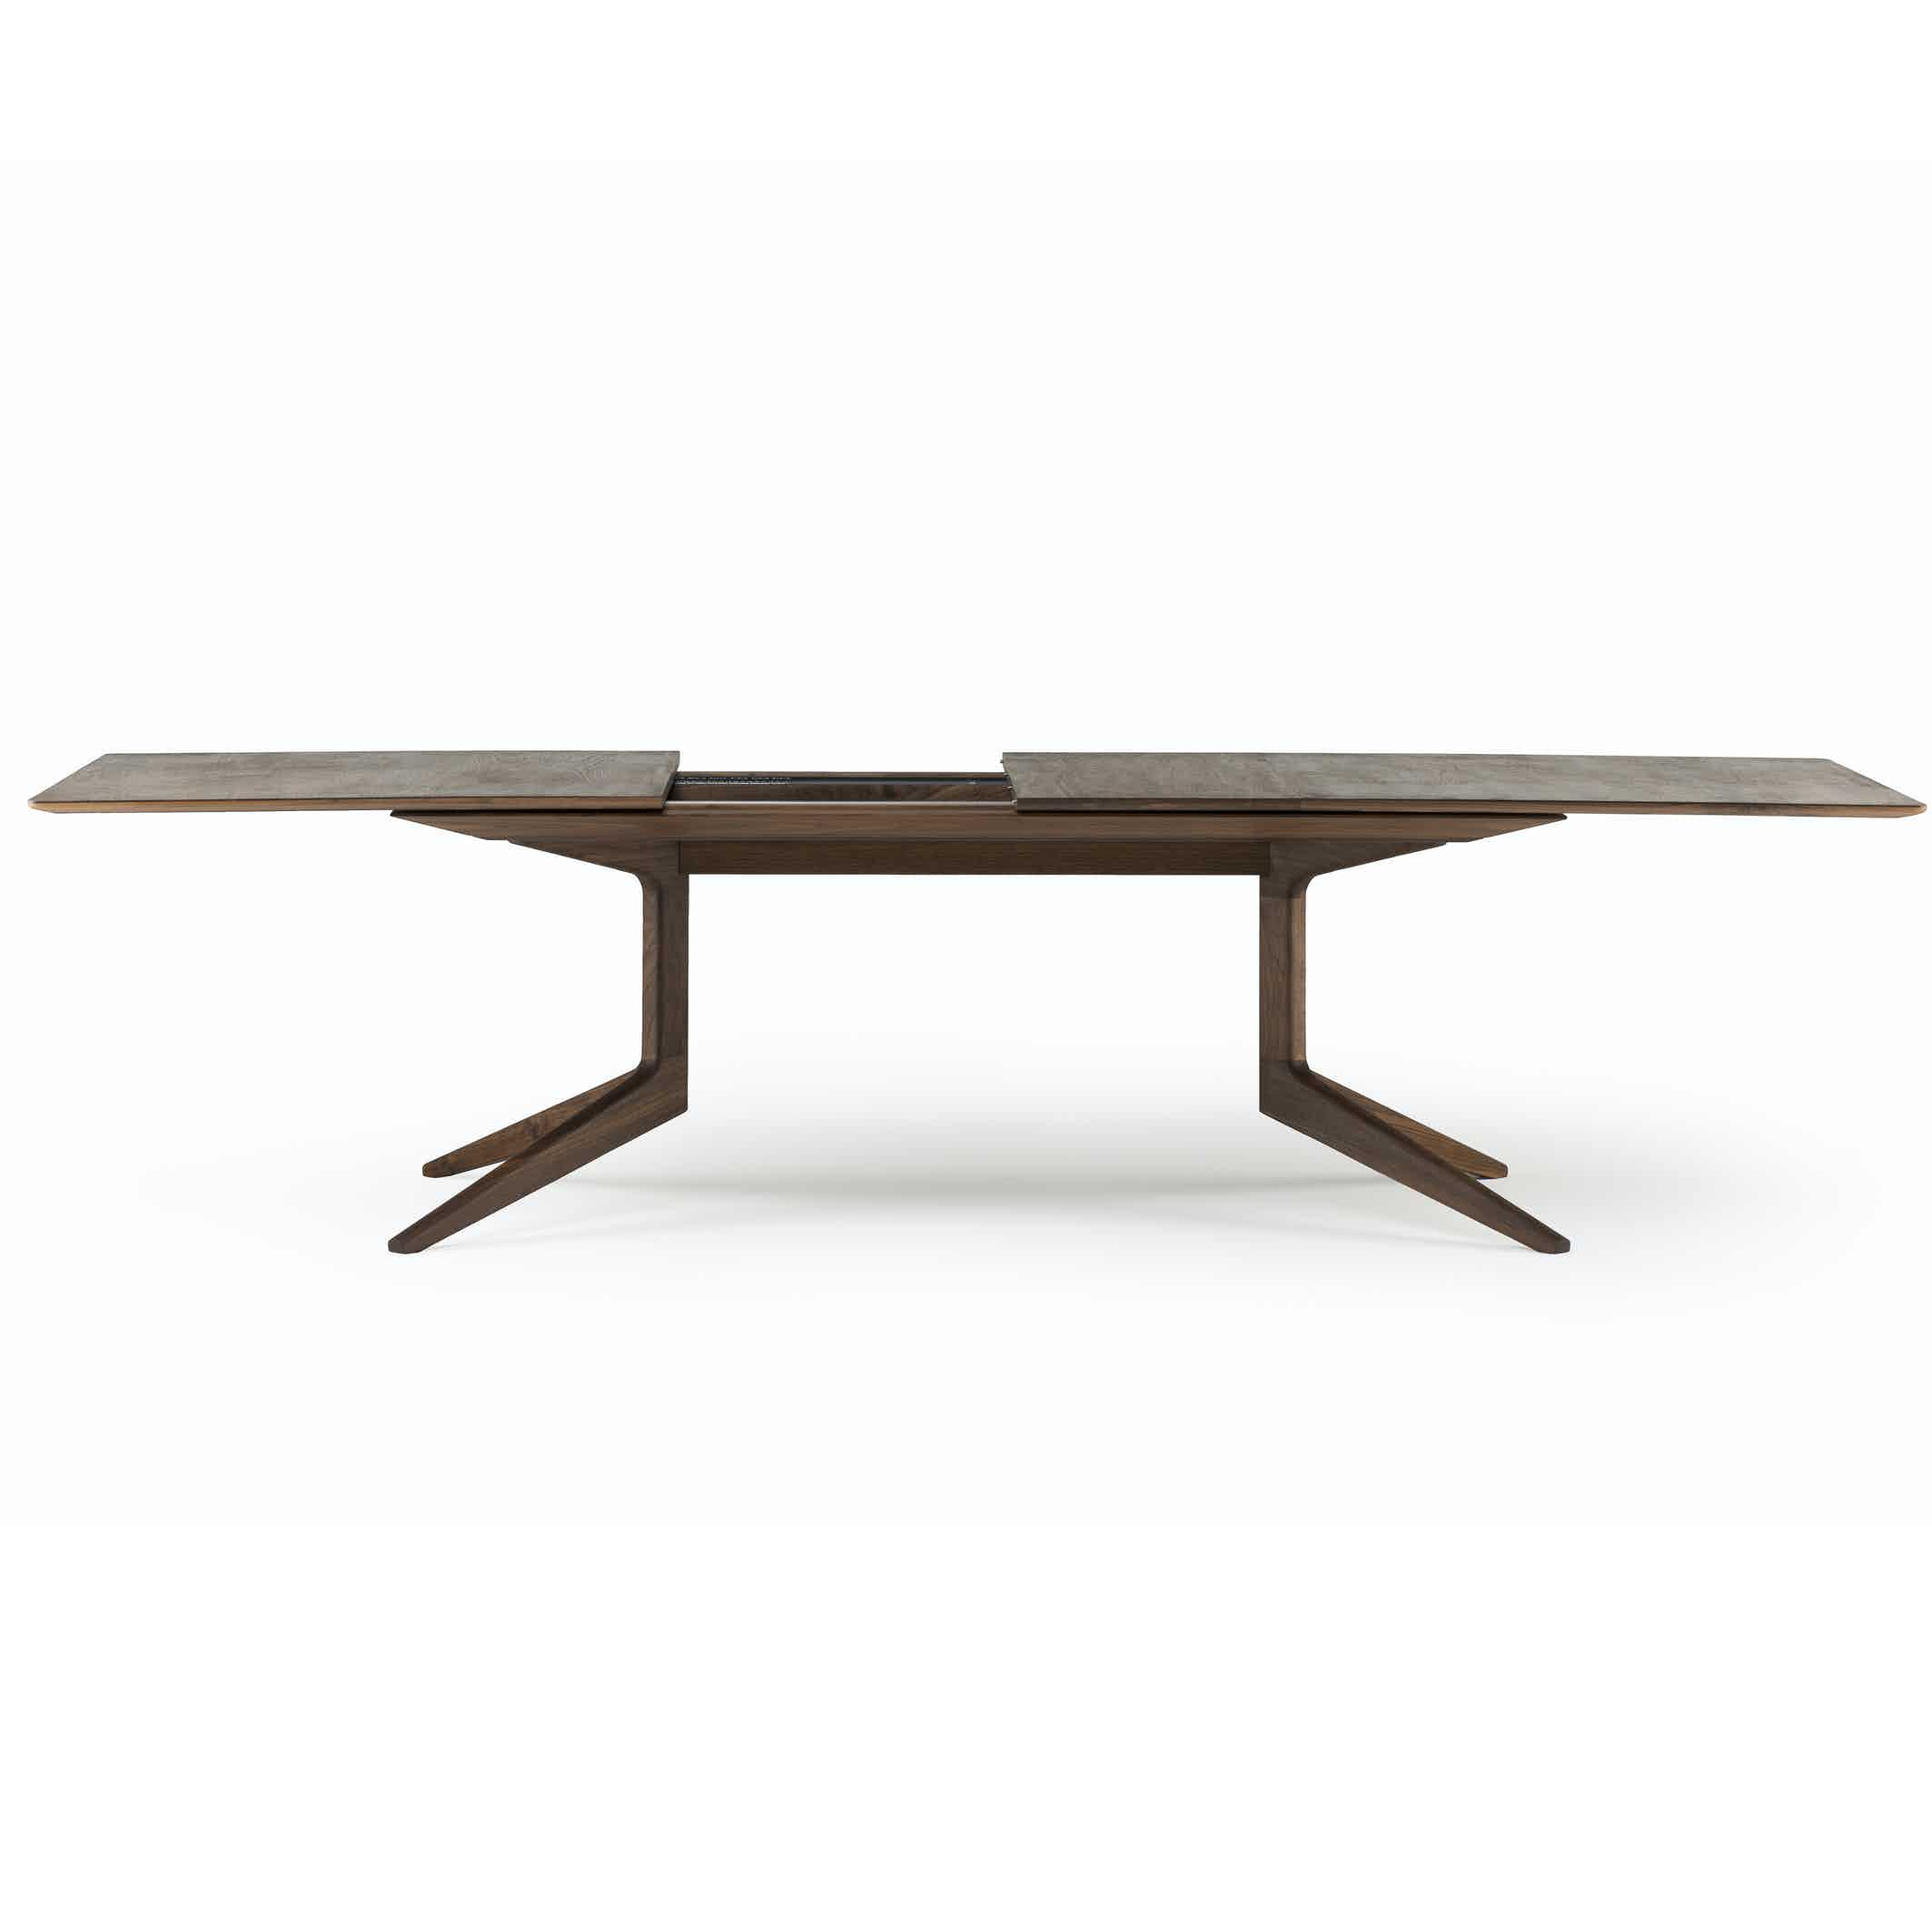 De La Espada Matthew Hilton Light Extending Table Thumbnail Haute Living